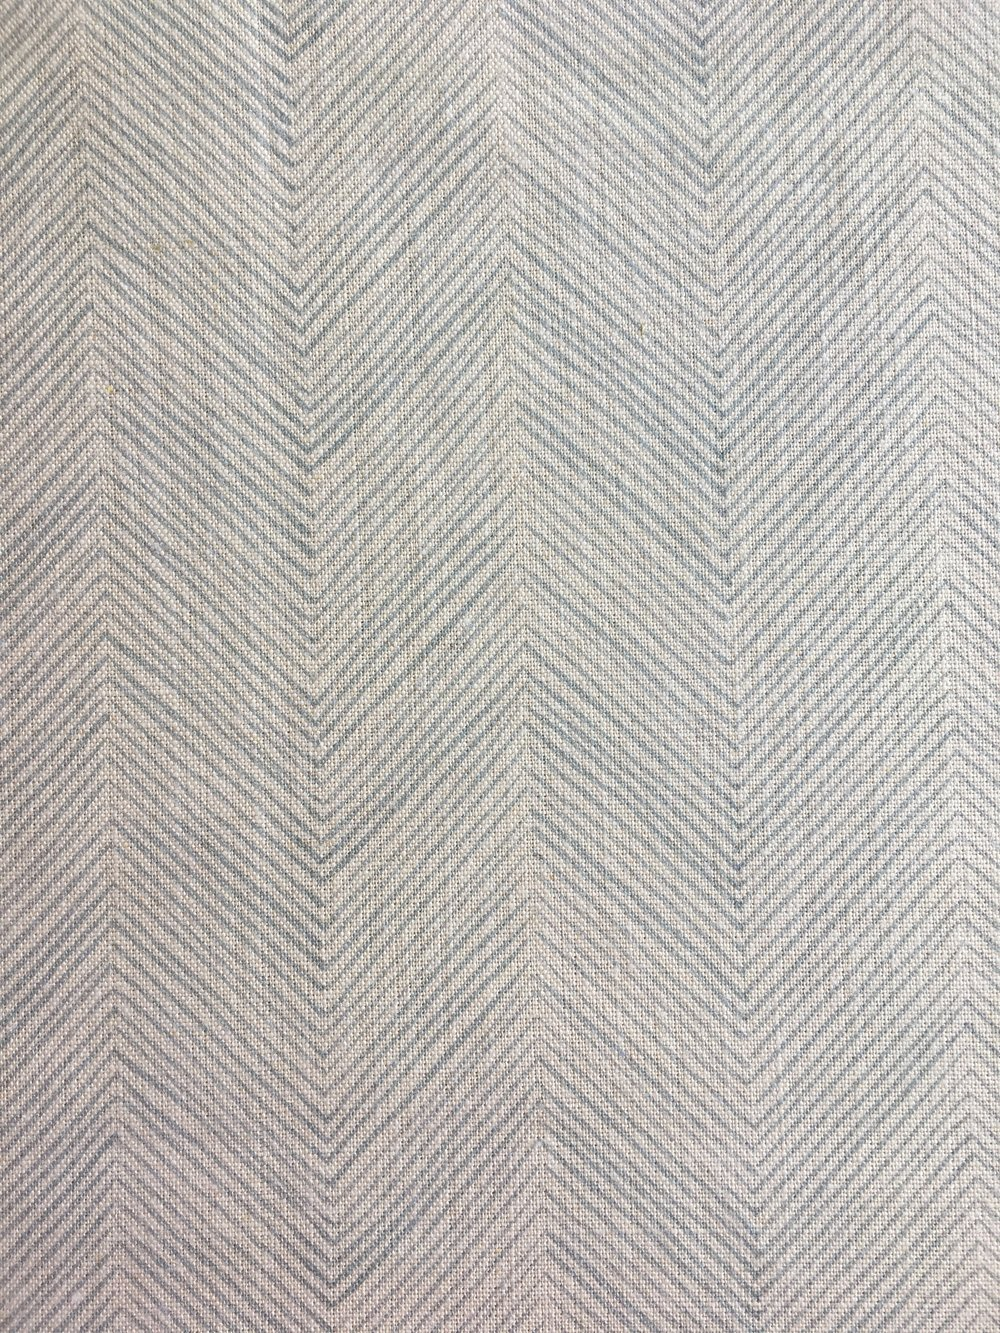 herringbone powder